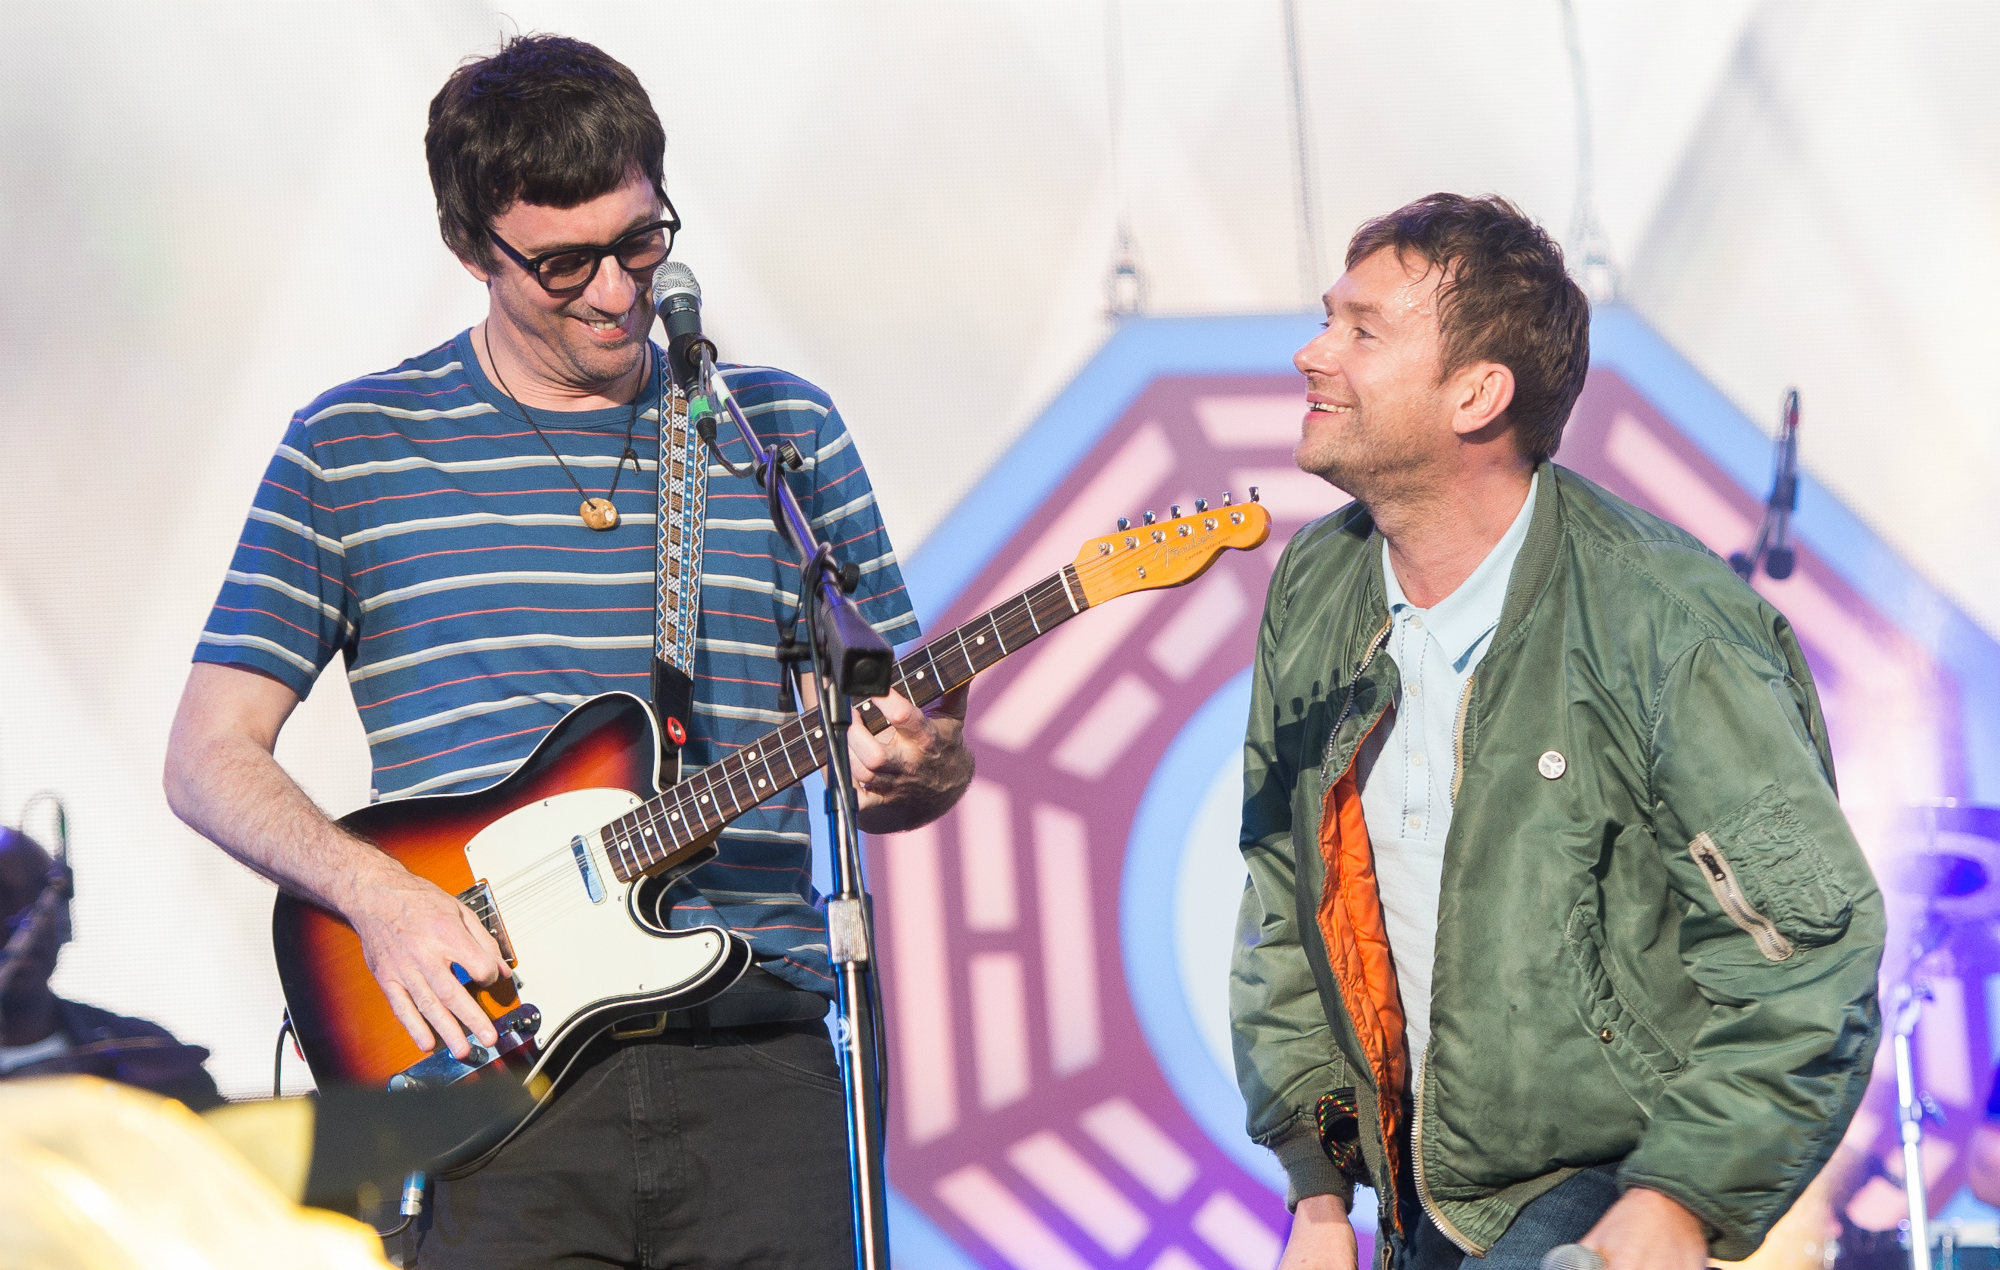 NME Festival blog: Watch Gorillaz play Blur's 'Song 2' with Graham